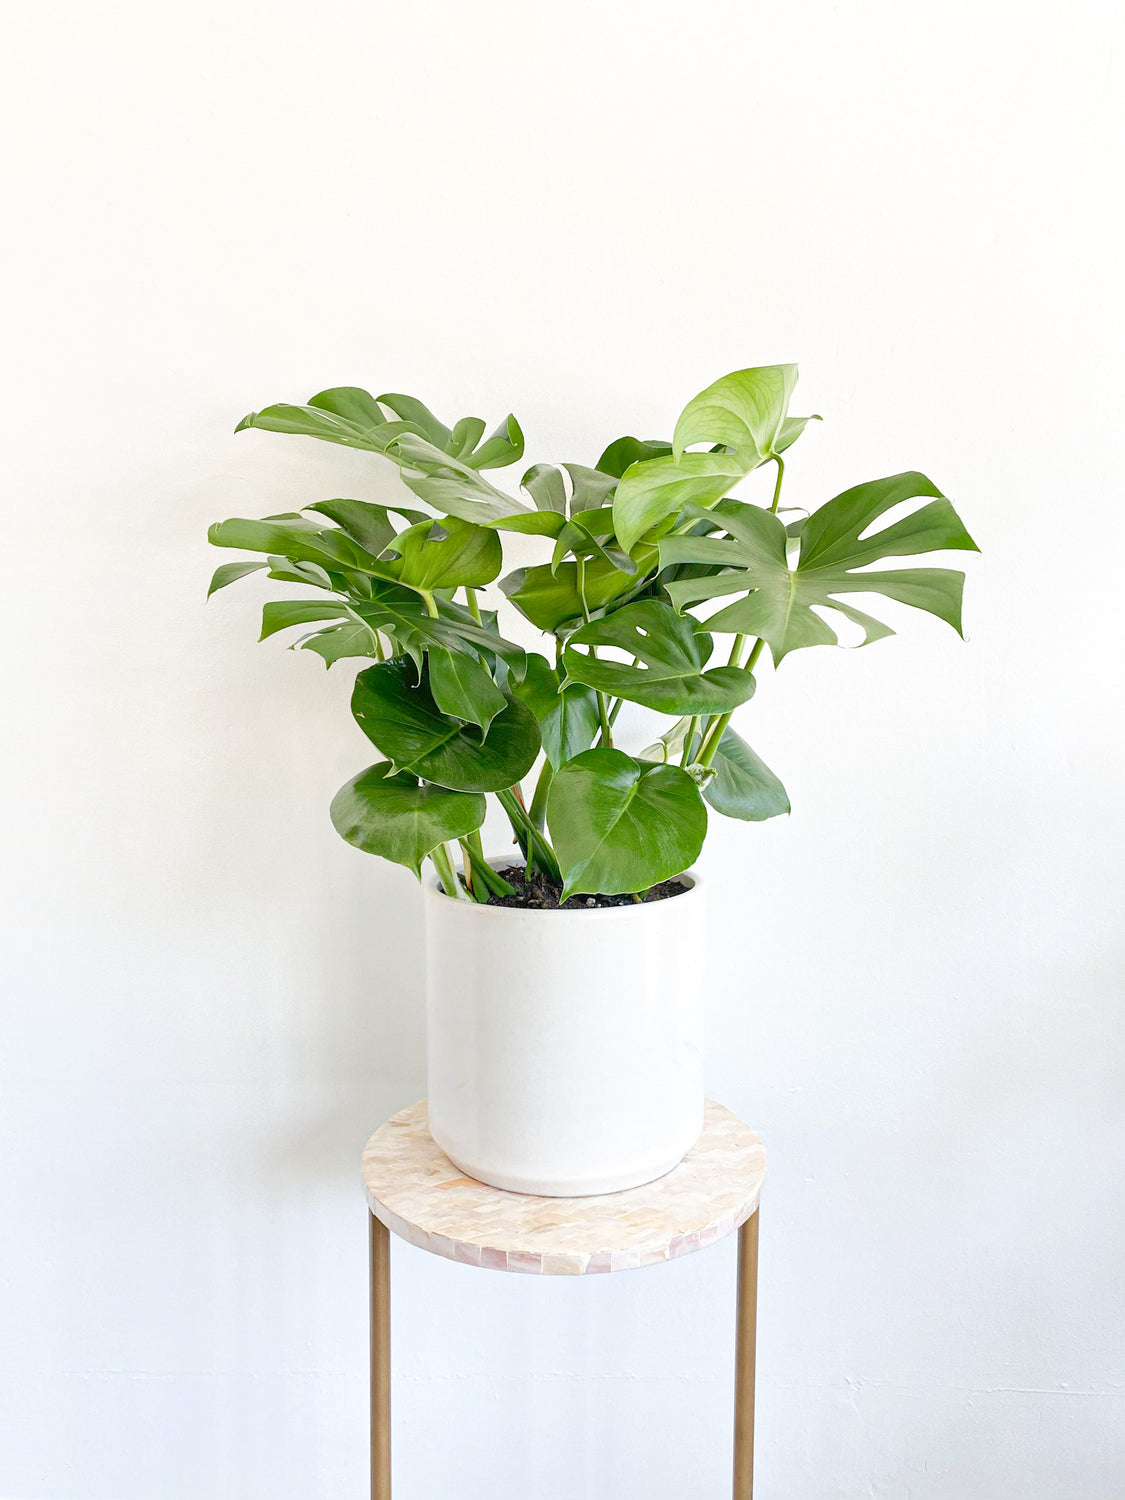 Monstera Deliciosa: Plant in White Cylinder Pot